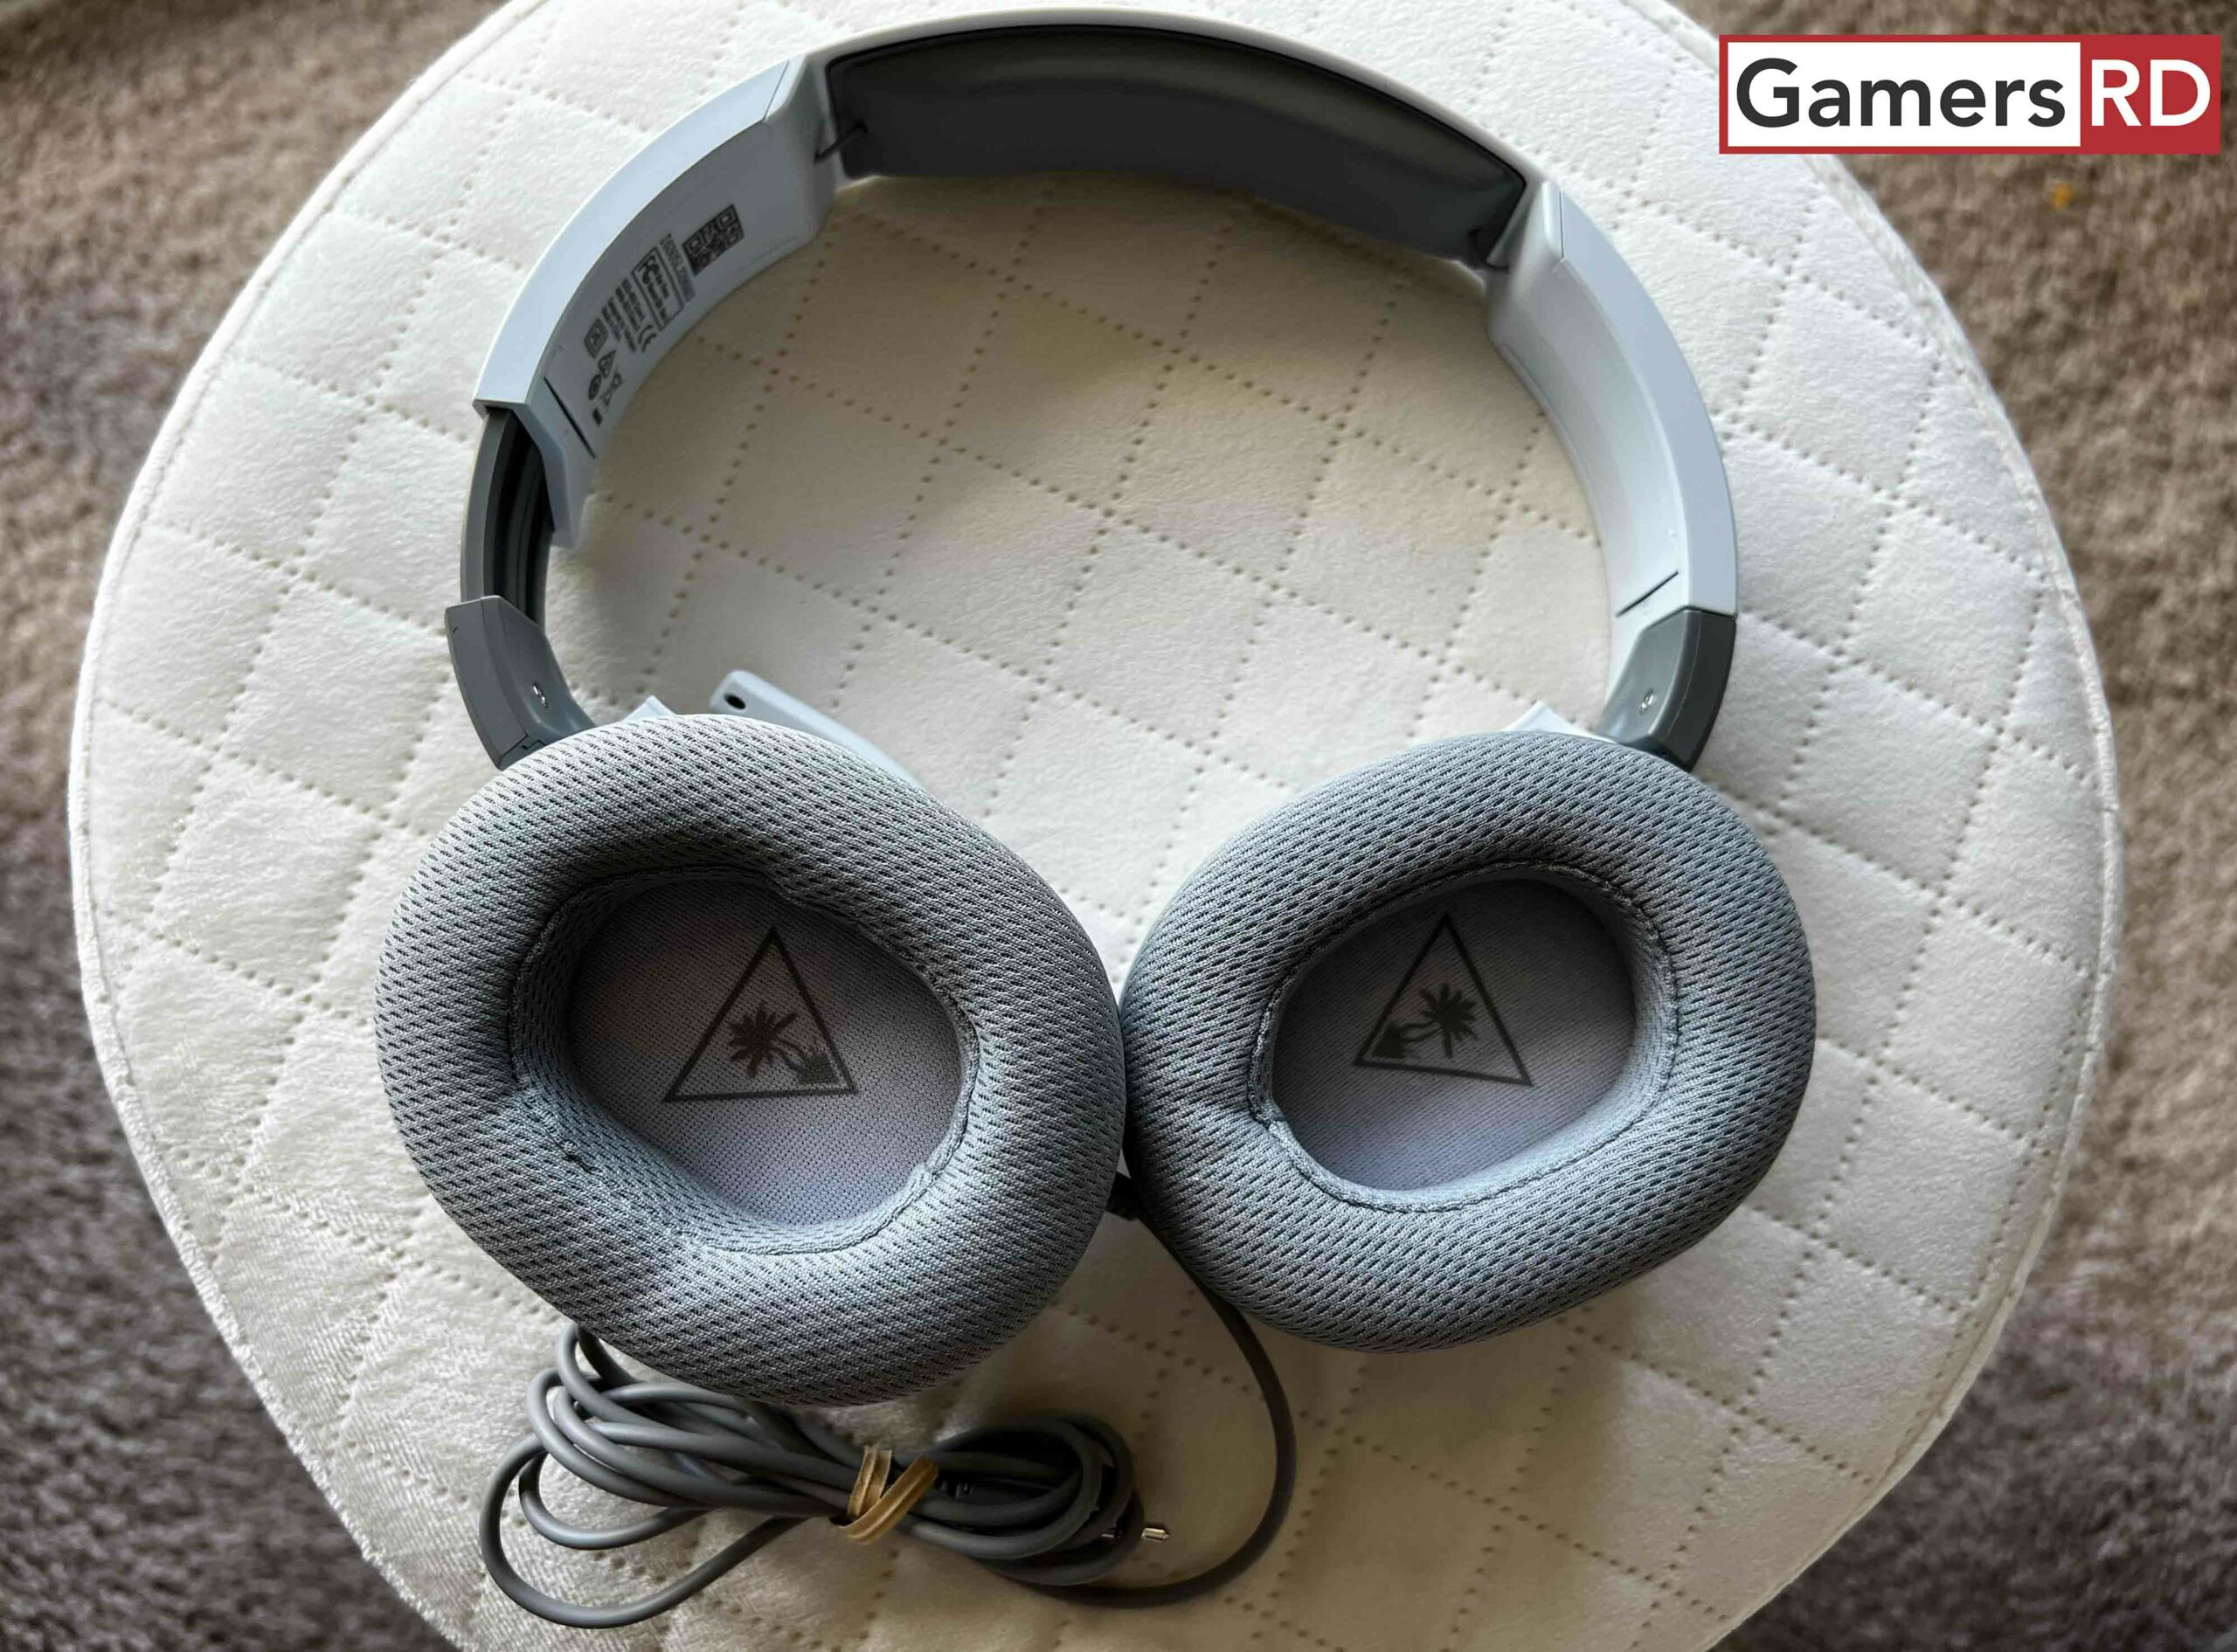 Turtle Beach Recon 200 Gen 2 Headsets Review, 3 GamersRD